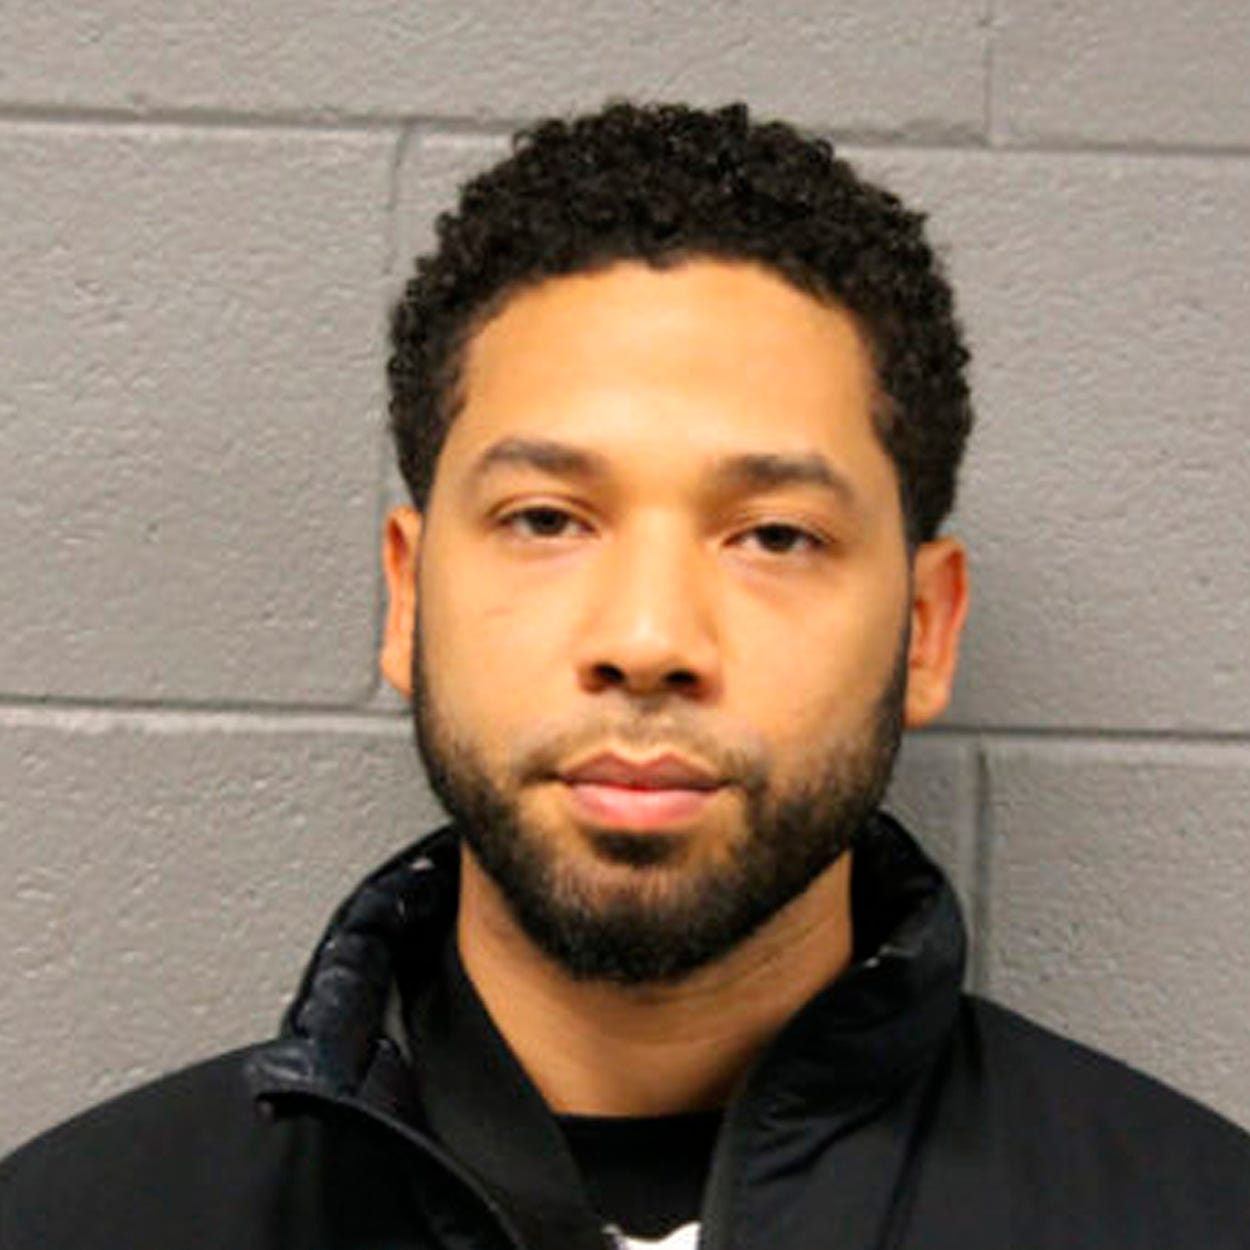 Jussie Smollett case: When the bogeyman is staring back at you